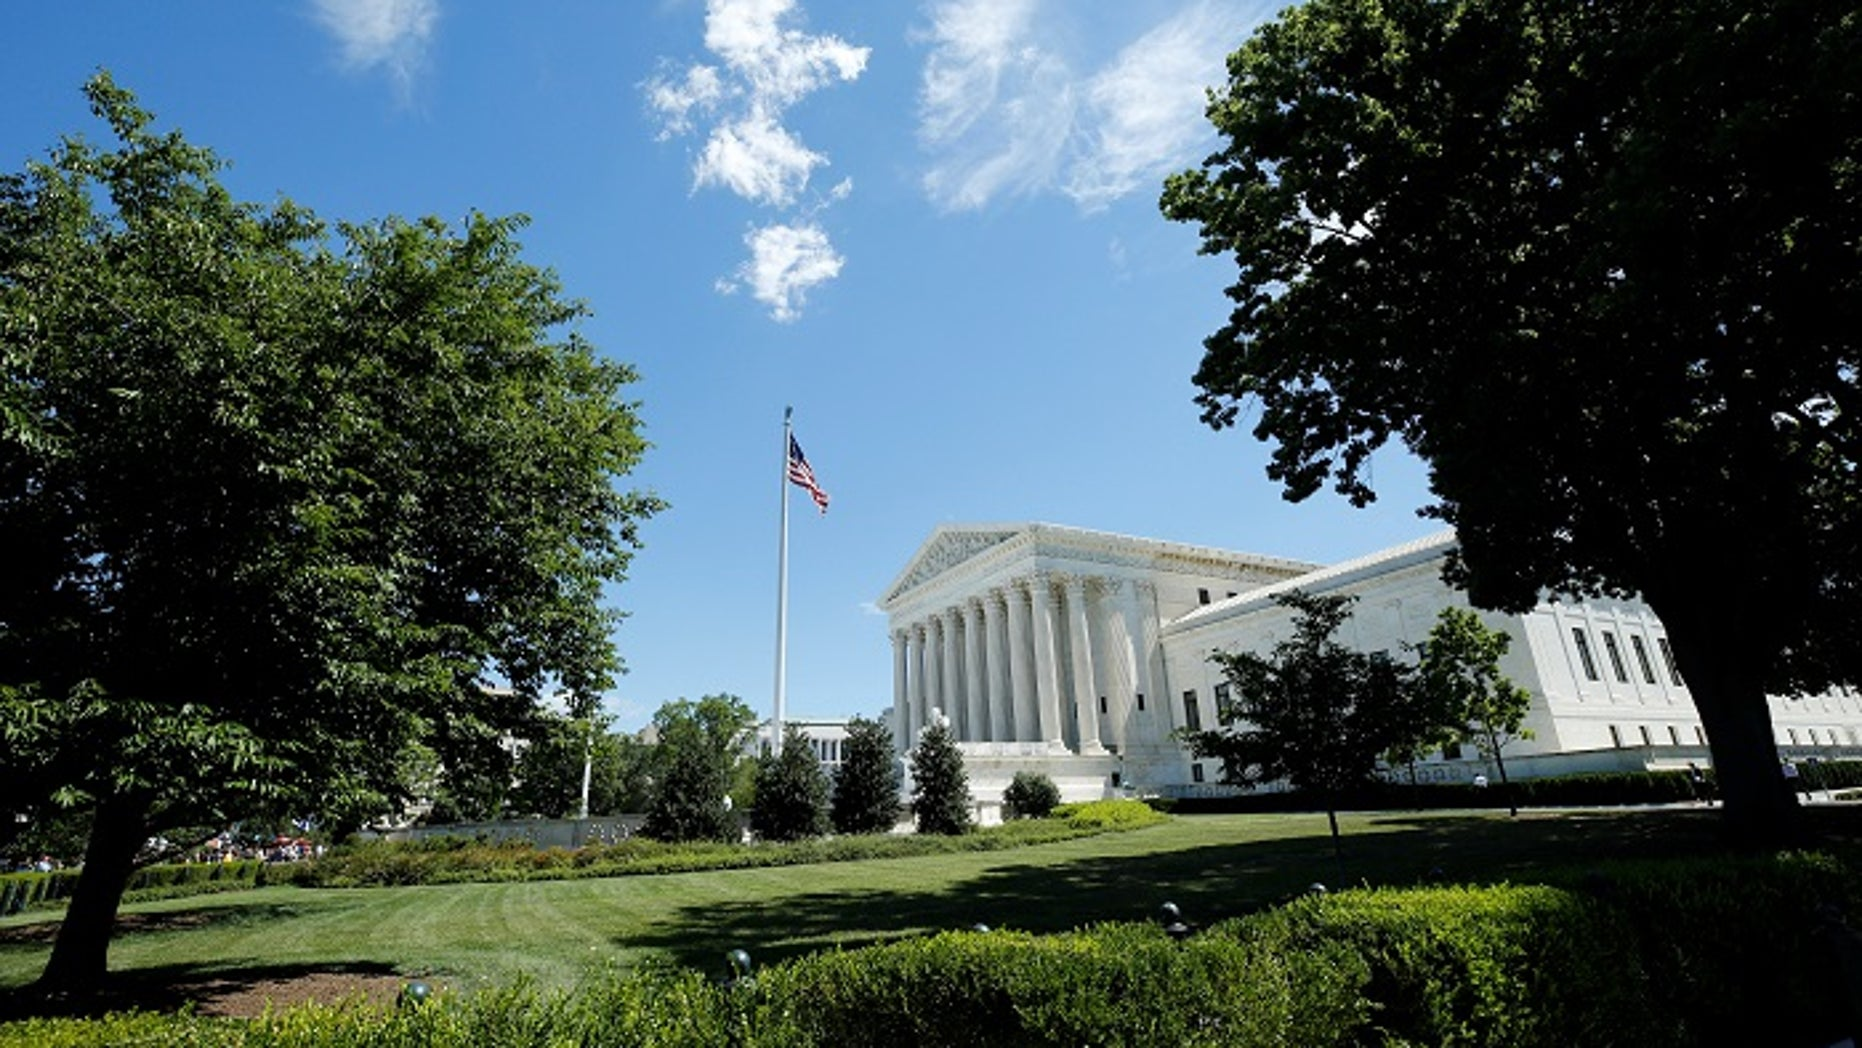 The building of the U.S. Supreme Court is seen after it granted parts of the Trump administration's emergency request to put his travel ban into effect immediately while the legal battle continues, in Washington, U.S., June 26, 2017. REUTERS/Yuri Gripas - RTS18P9S